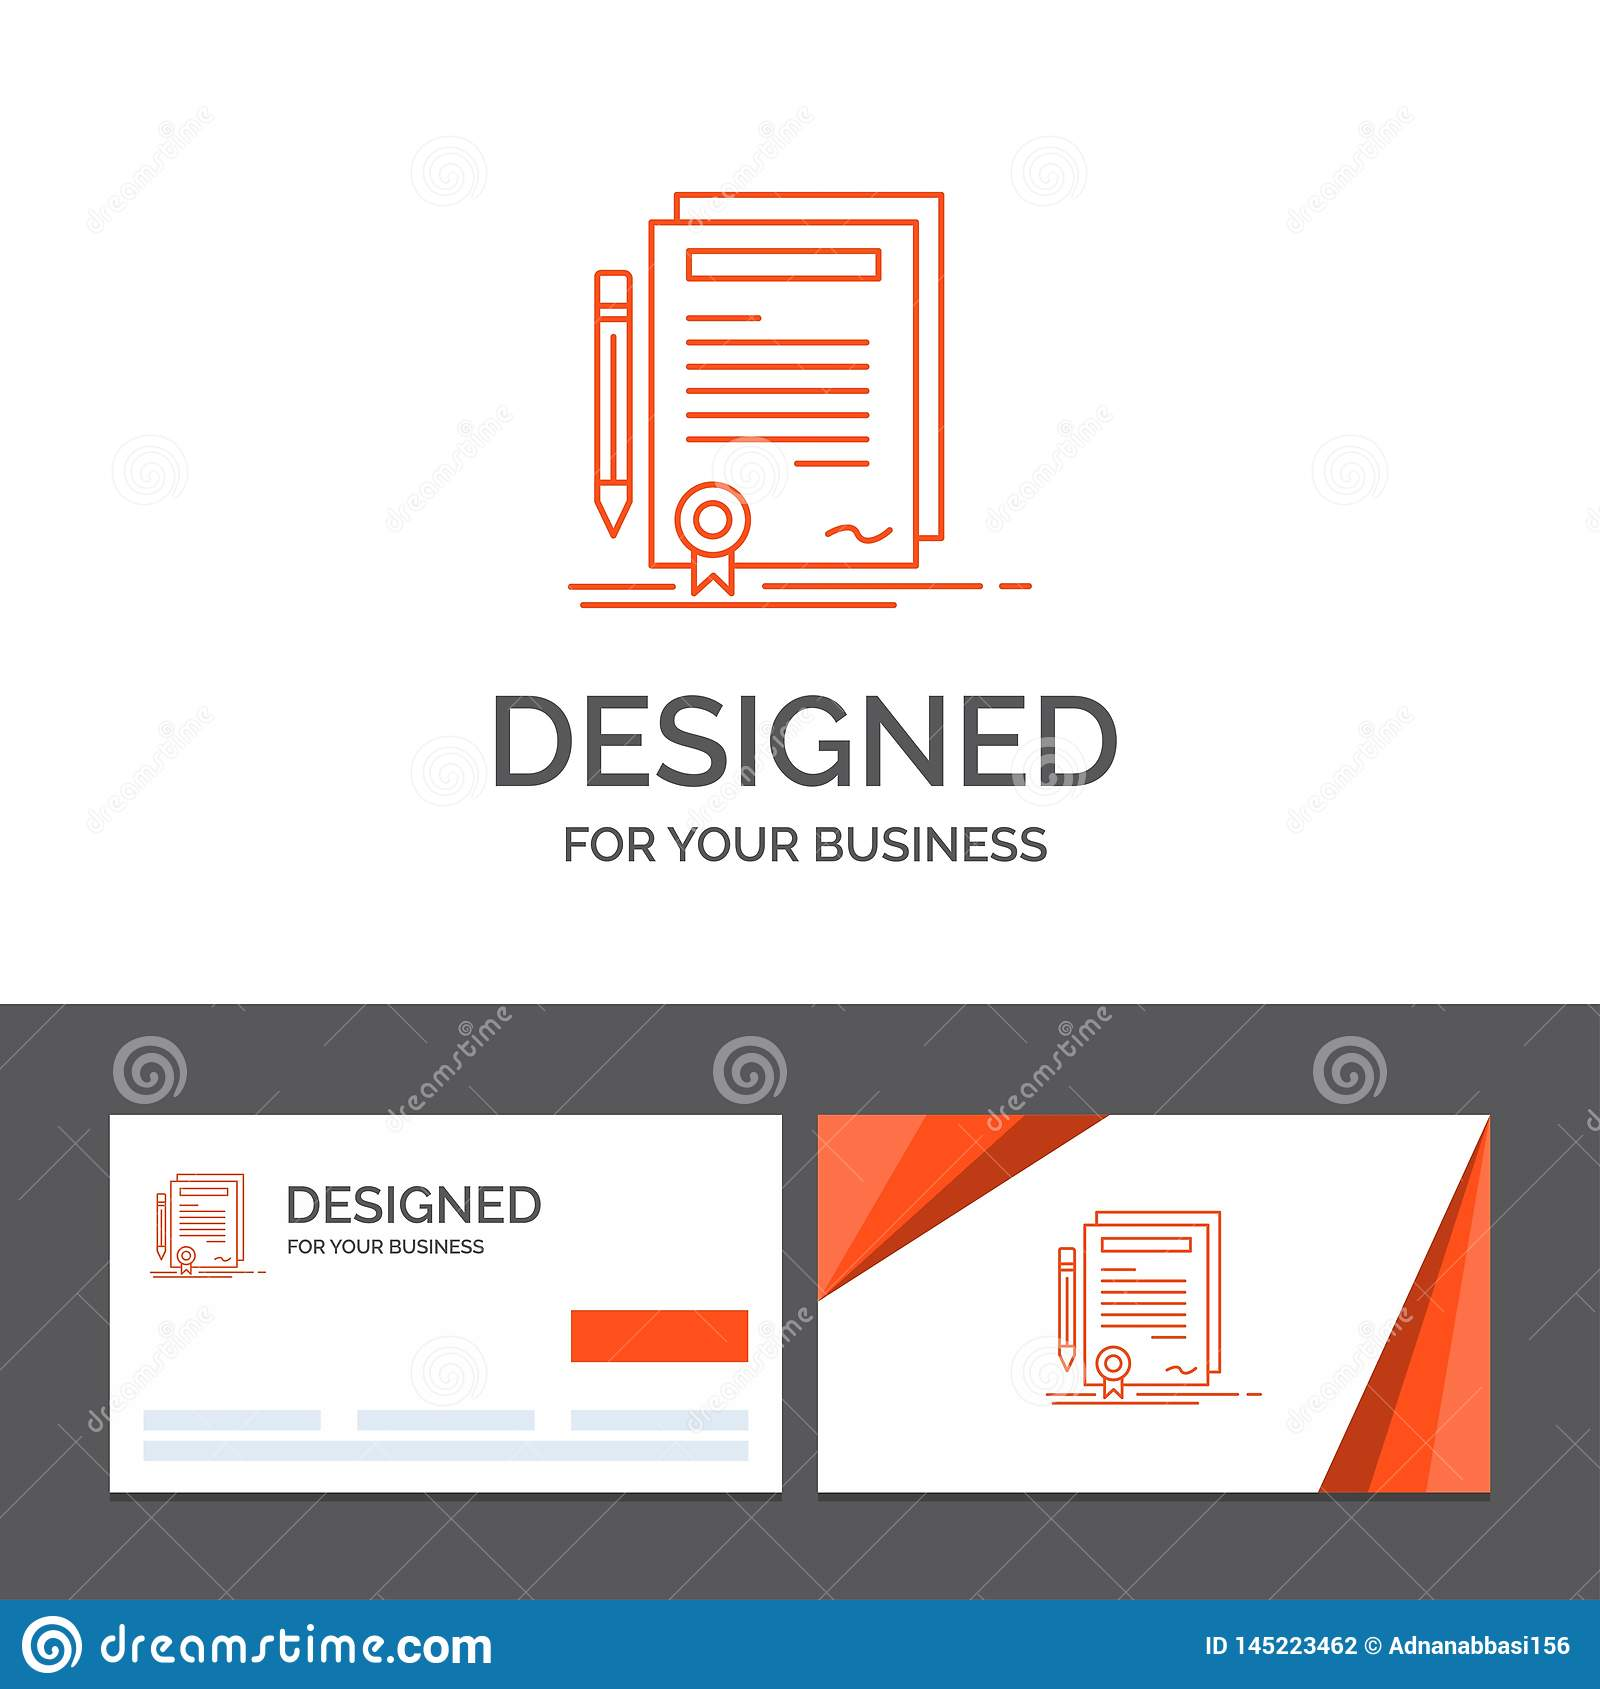 Business logo template for Business, certificate, contract, degree, document. Orange Visiting Cards with Brand logo template